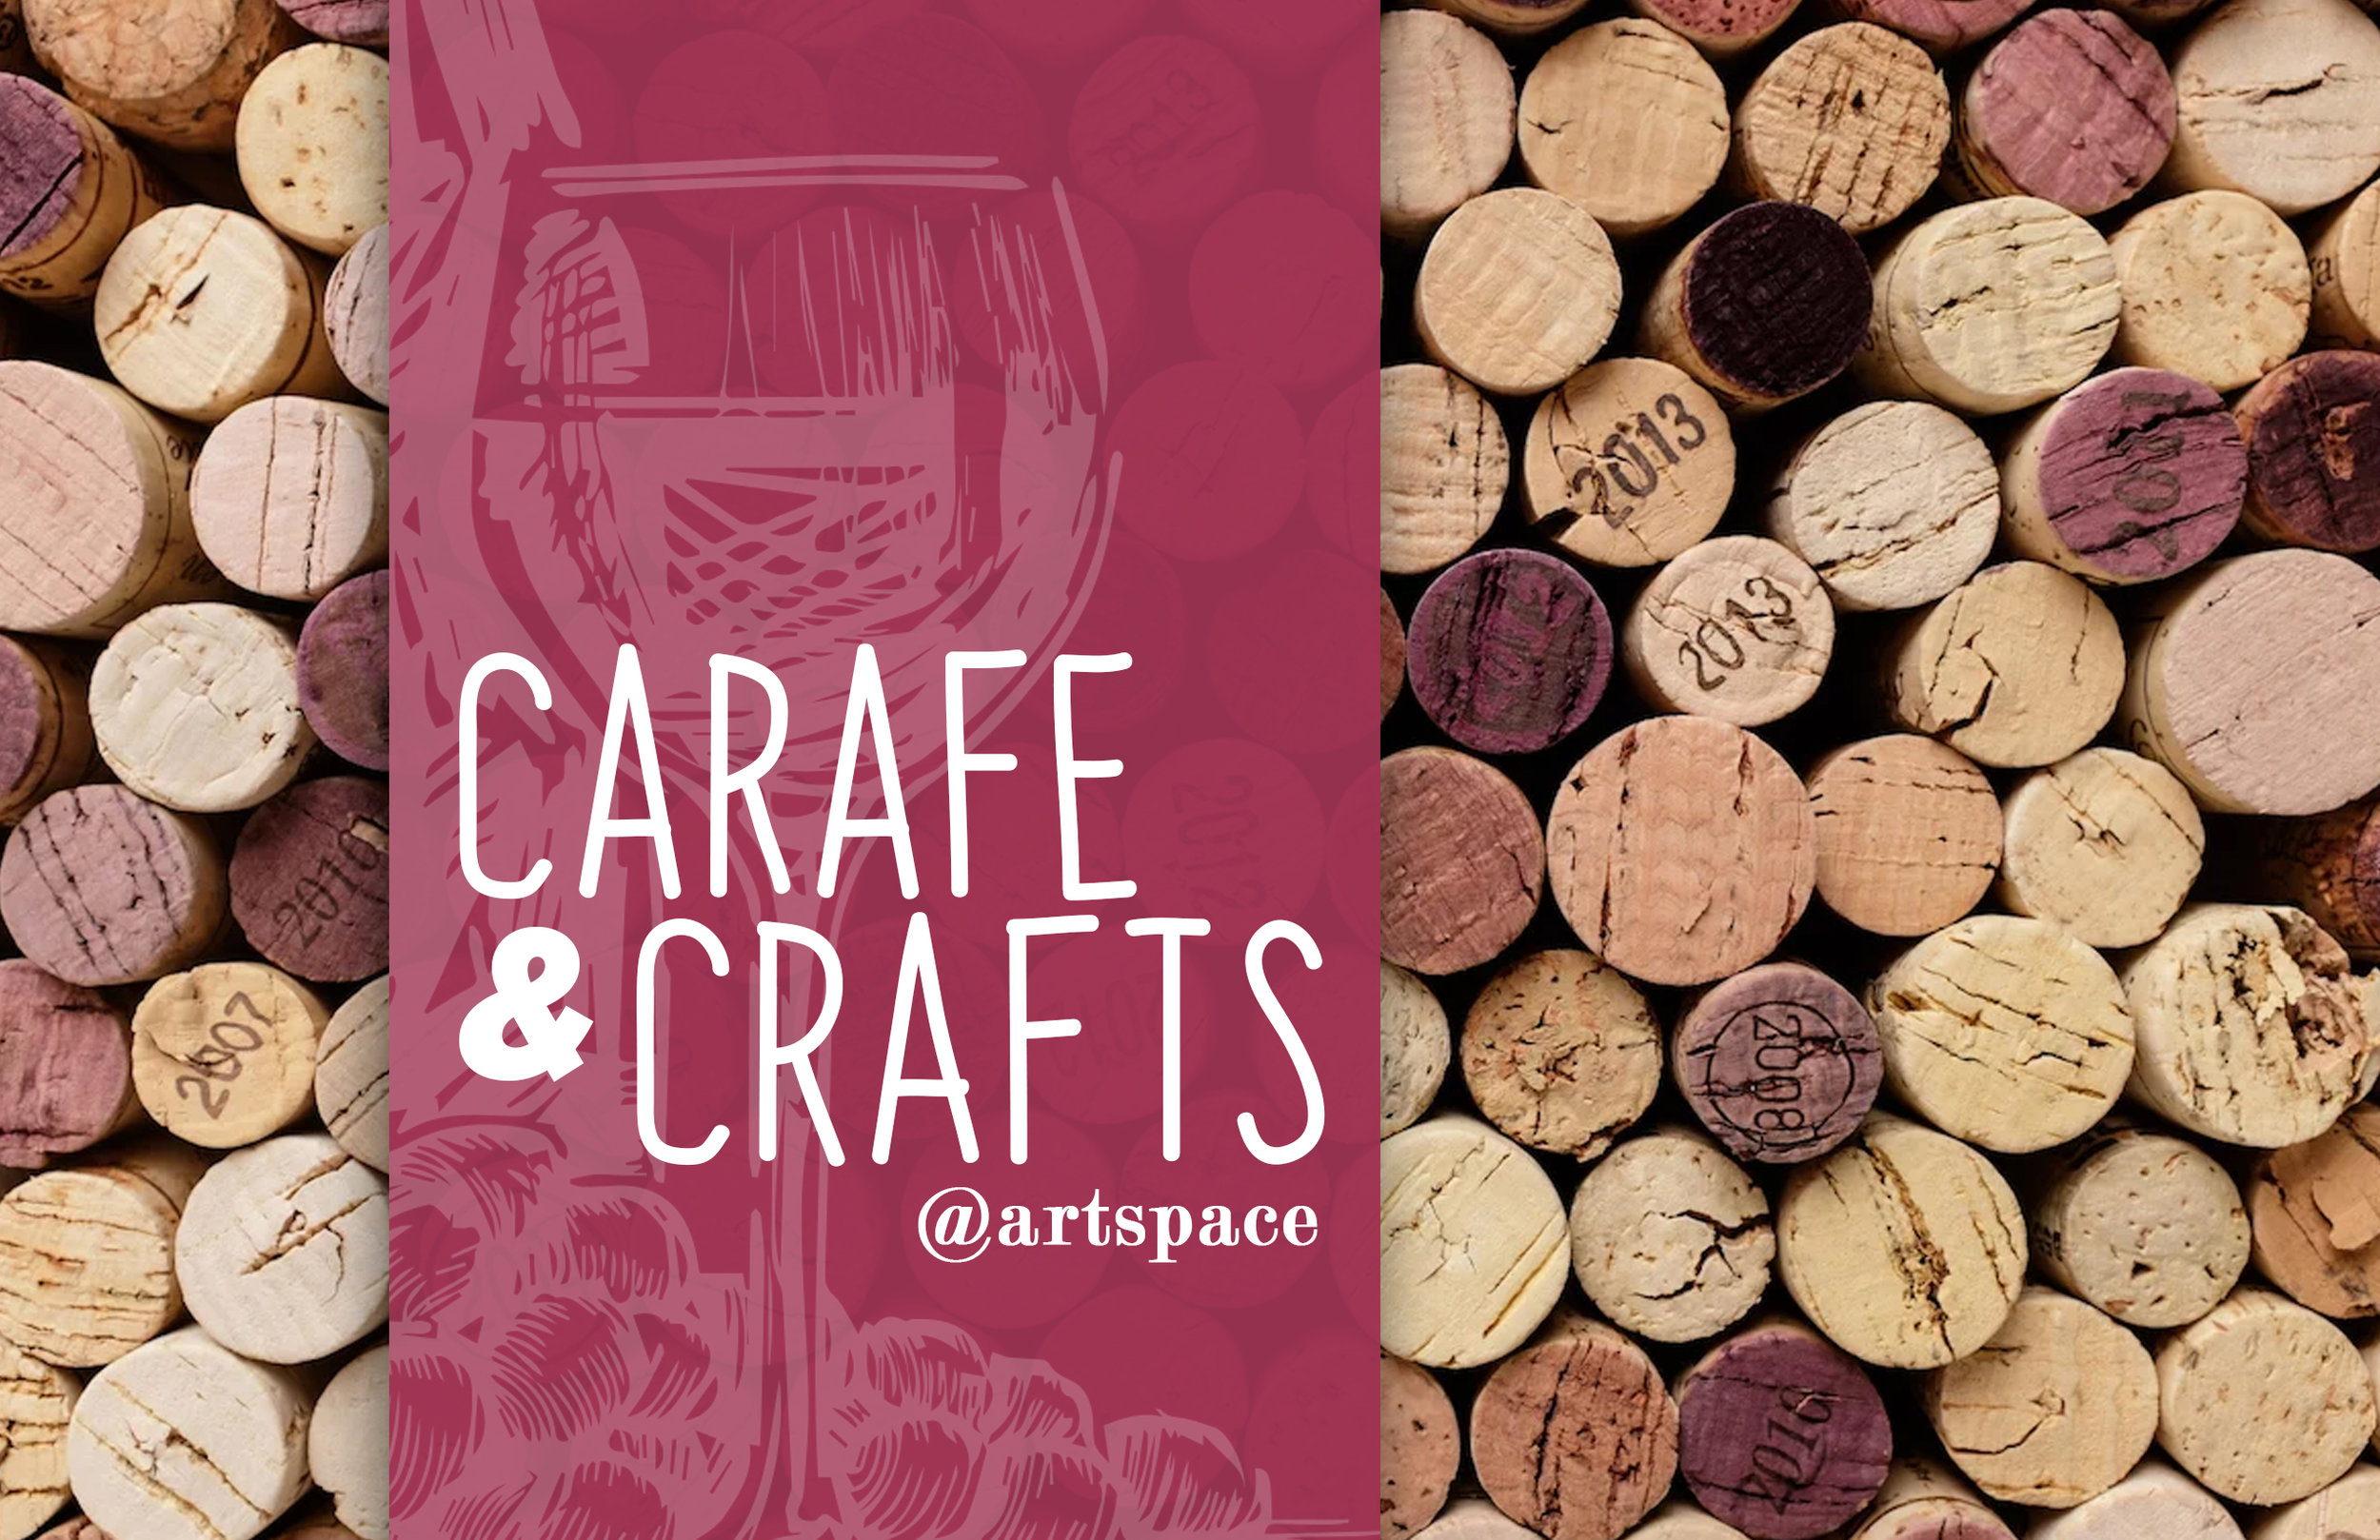 Carafe & Craft Wine2.jpg